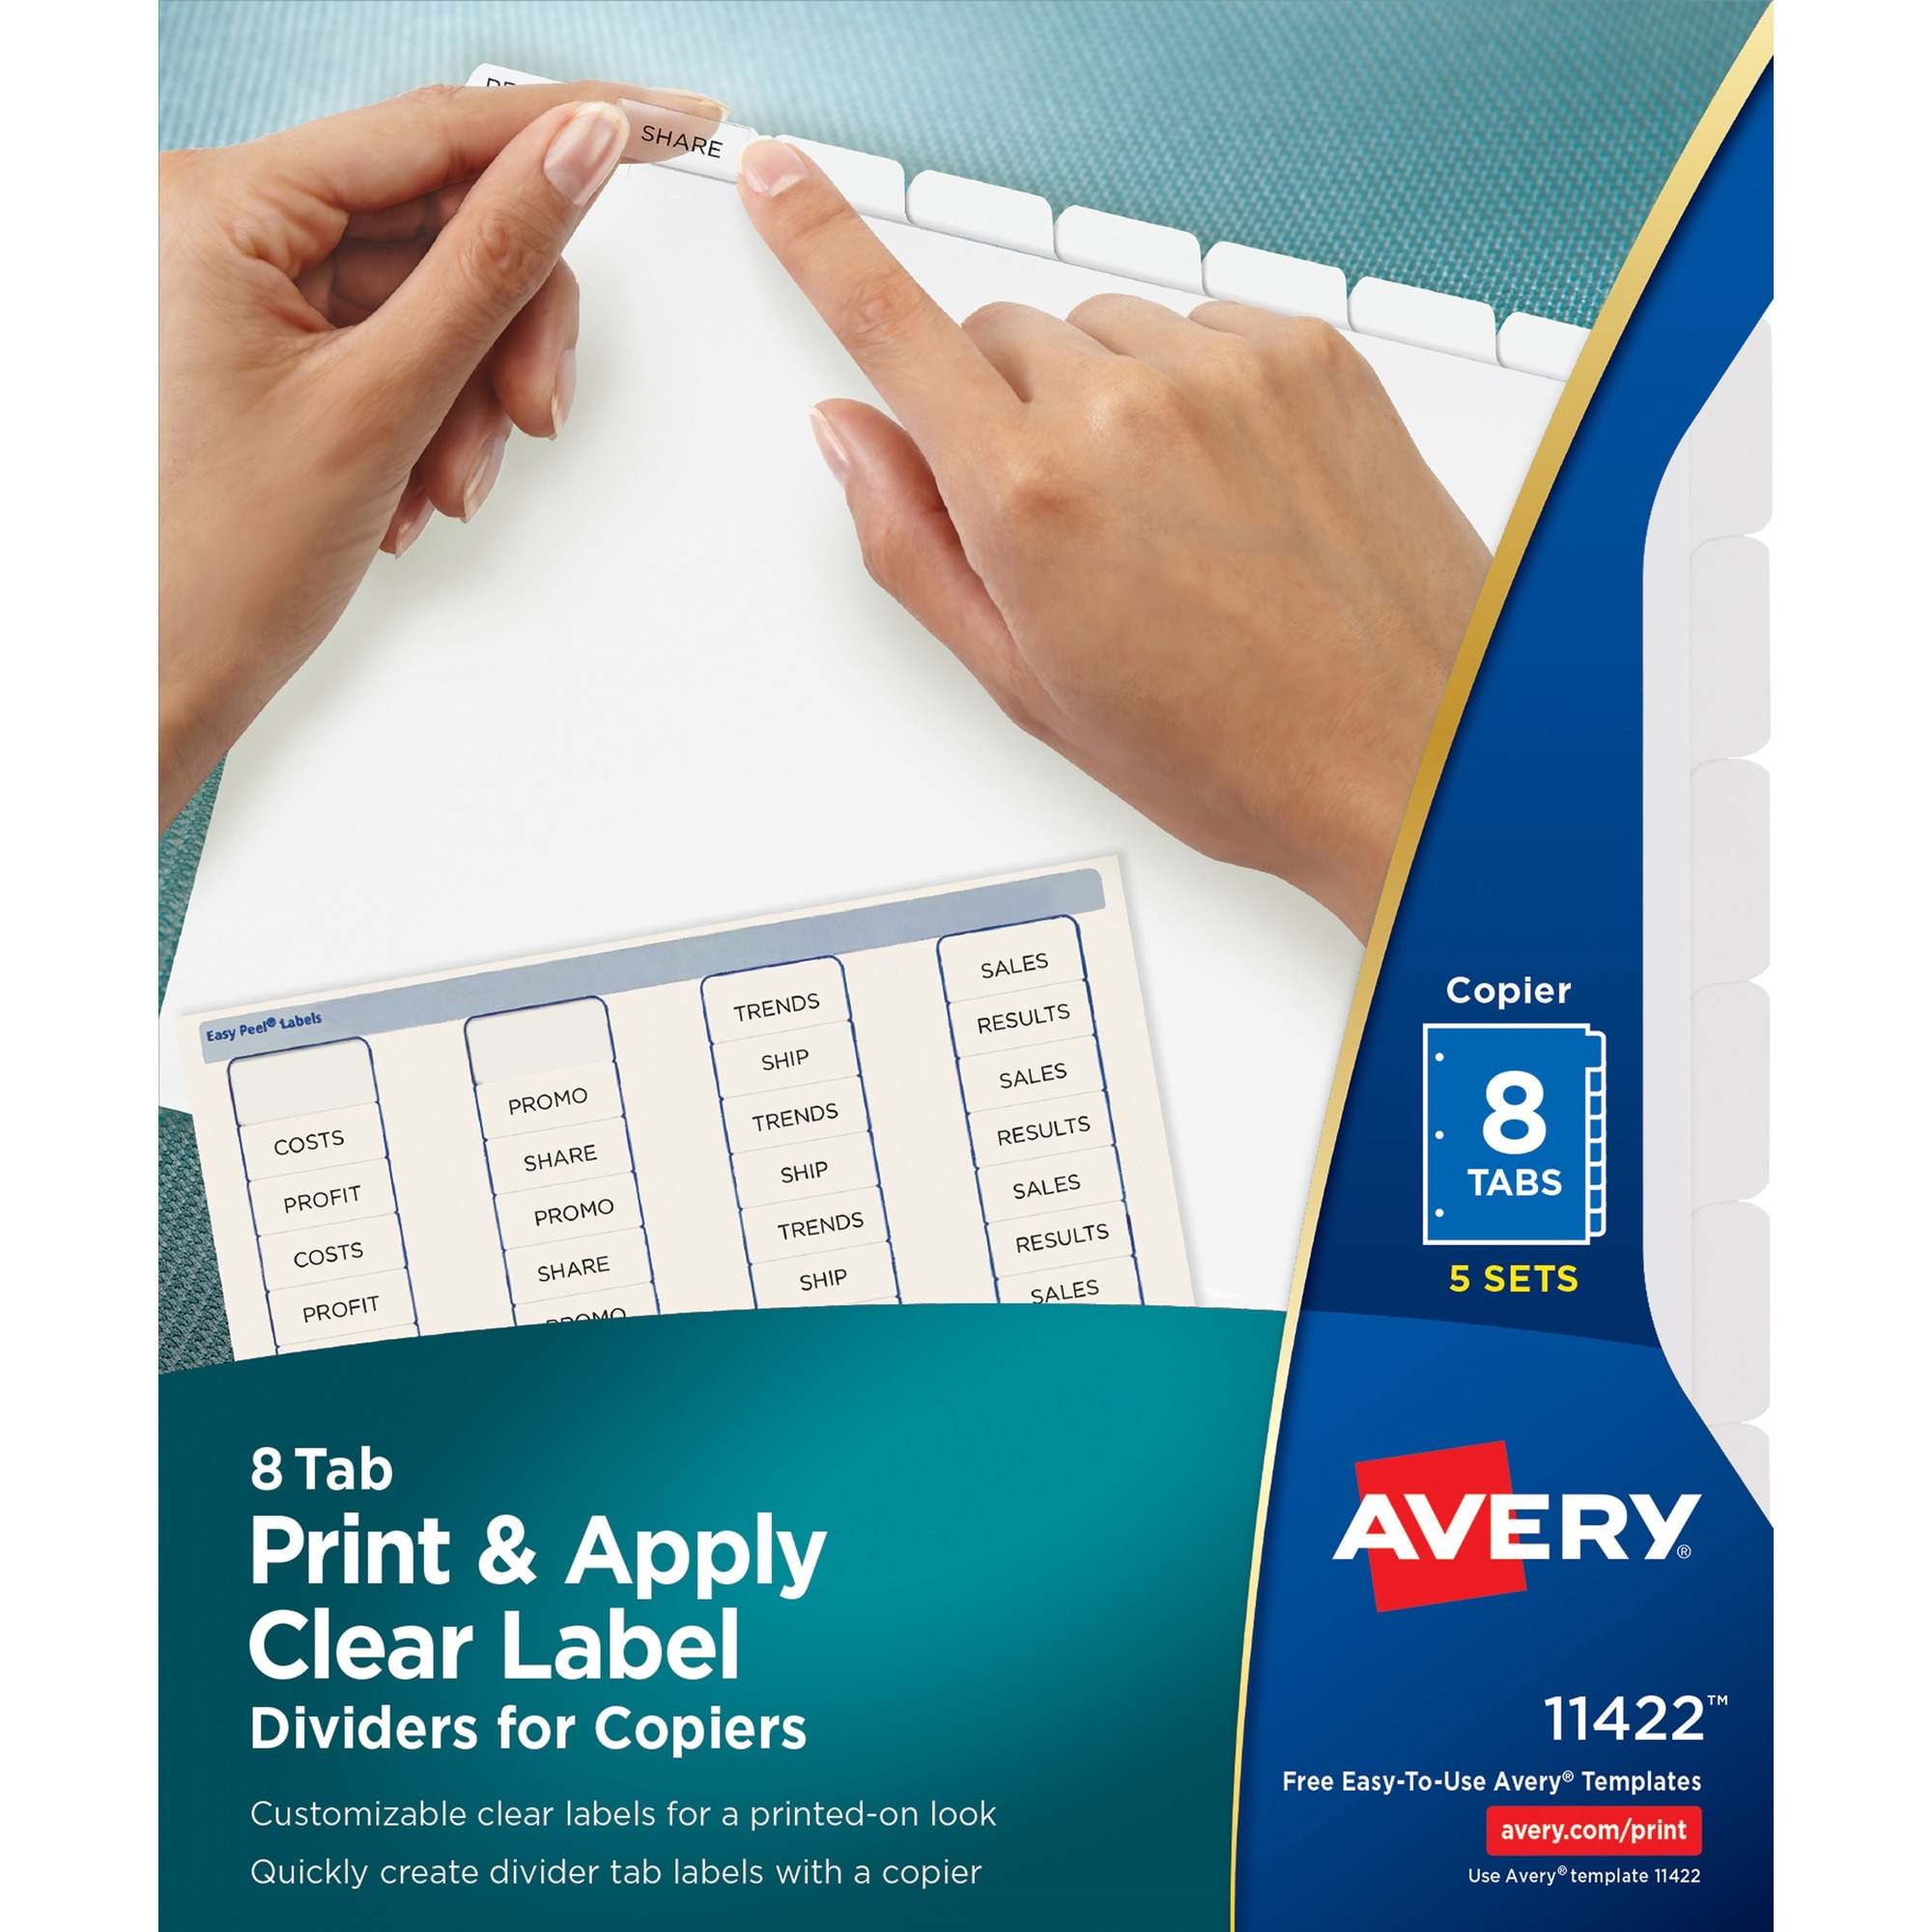 Avery® Index Maker Print & Apply Clear Label Dividers with White